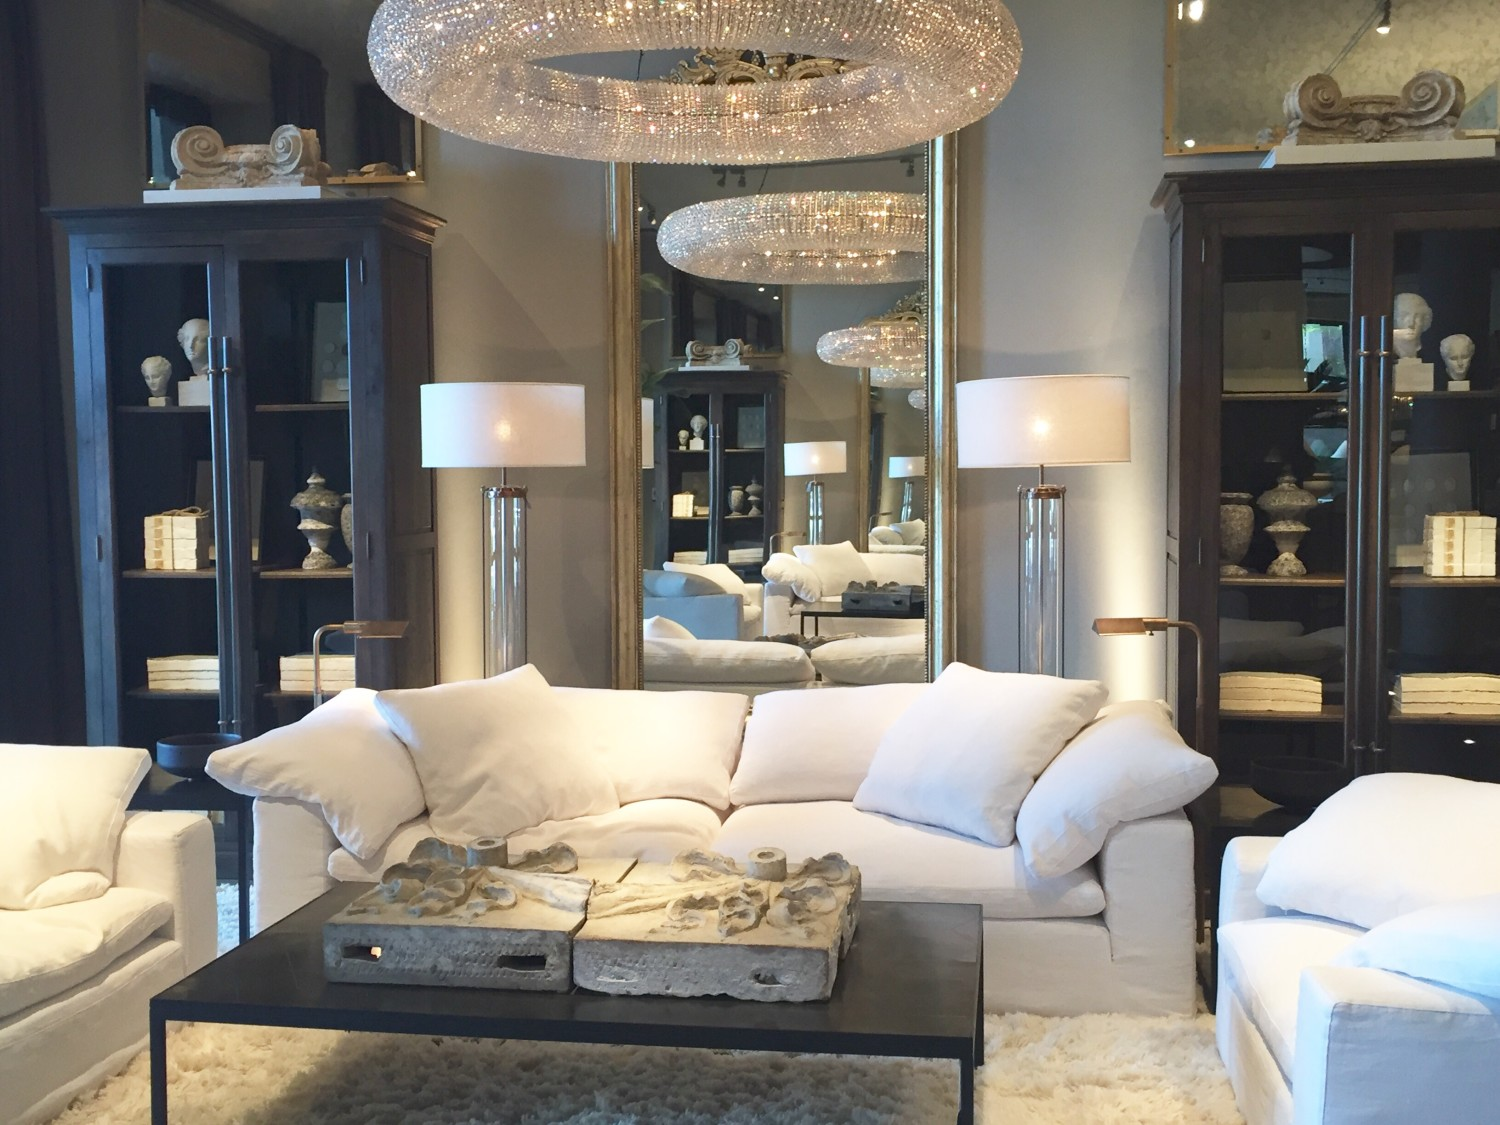 Restoration hardware bedroom furniture - The First Level Was Filled With Gorgeous Living Room And Bedroom Furniture Here Are A Few Photos Of My Favorite Seating Areas